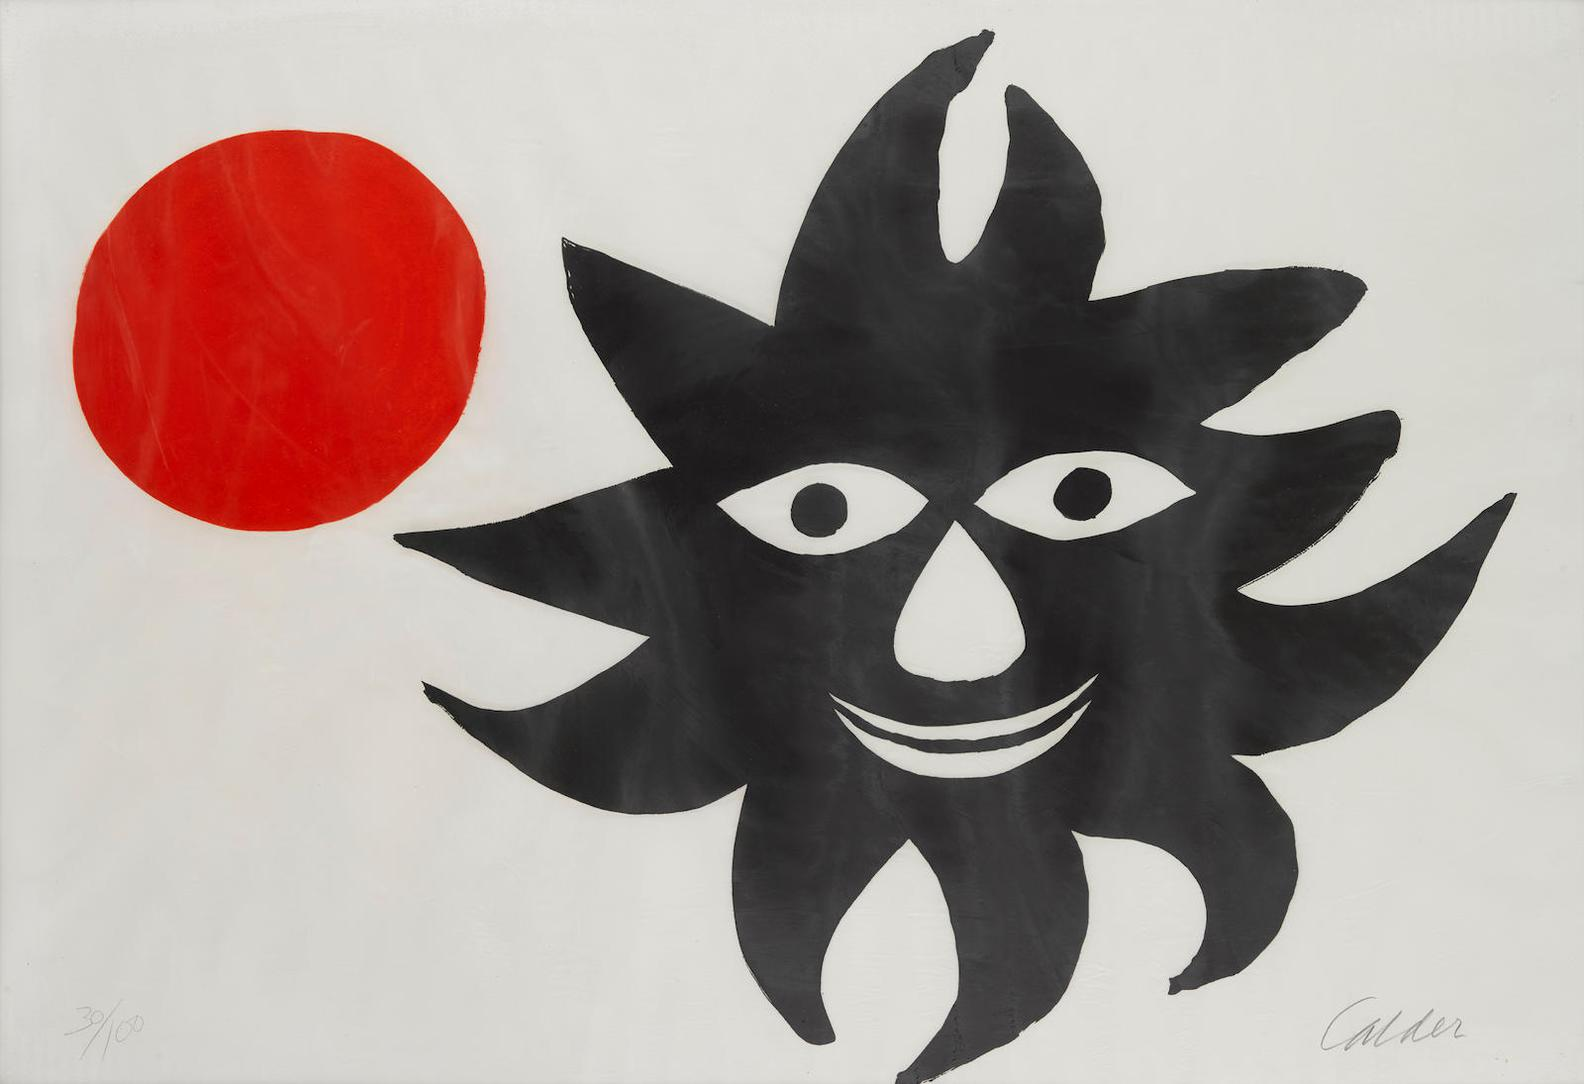 Alexander Calder-Red Moon And Black Sun-1970